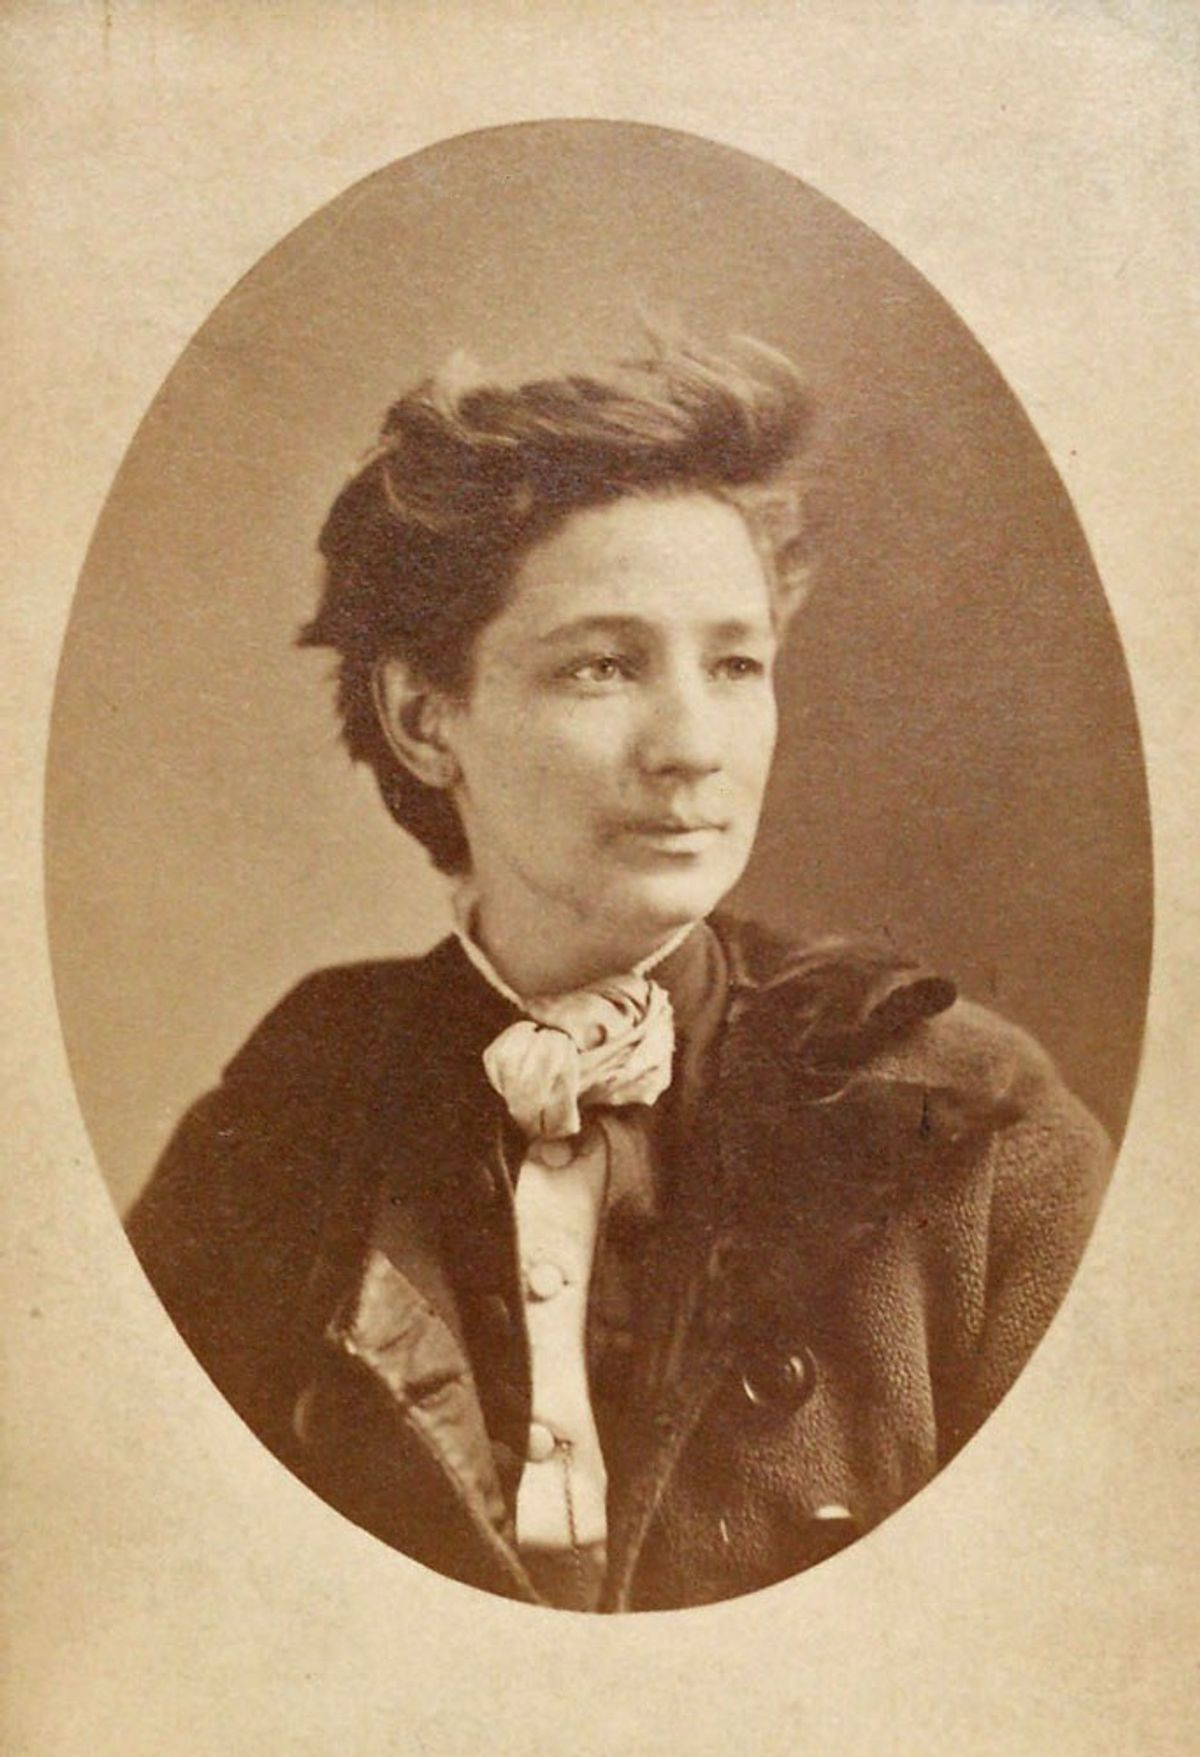 Meet Victoria Woodhull: The First Woman To Run For President